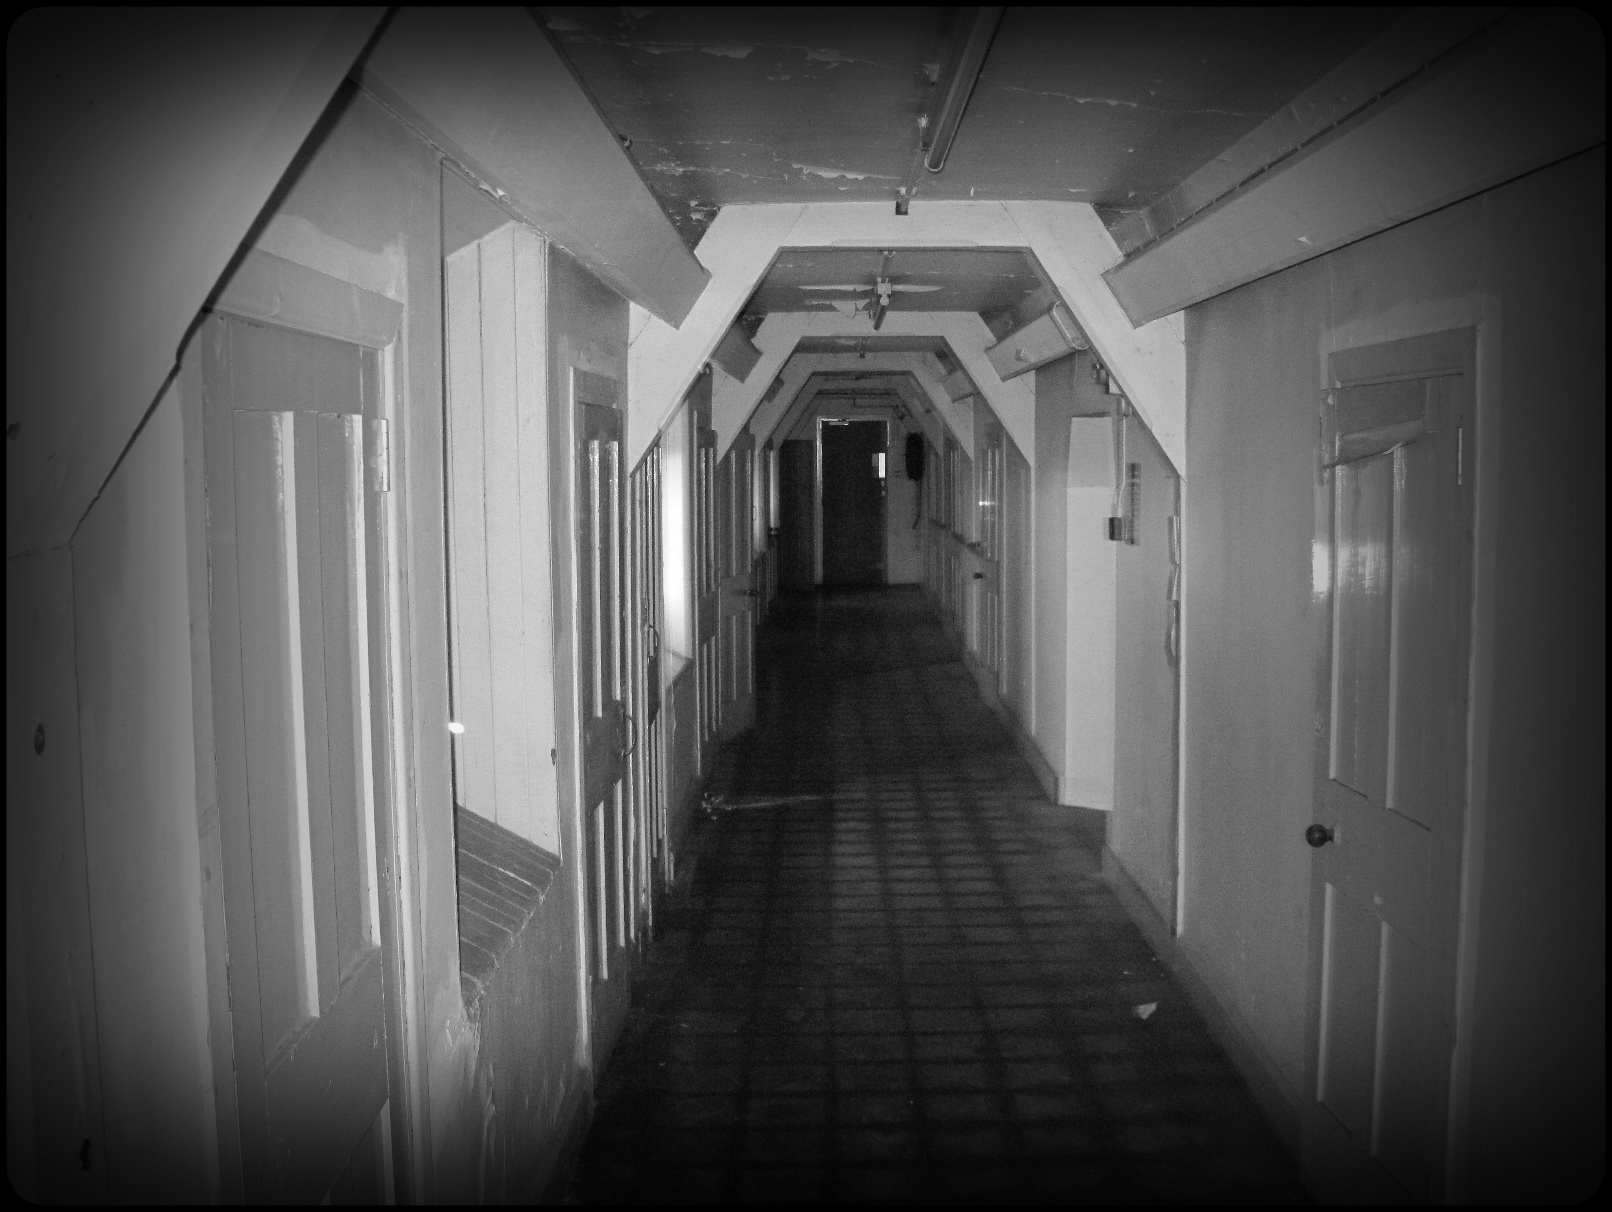 Newsham_Park_Hospital_and_Orphanage_Ghost_Hunts_003.jpg